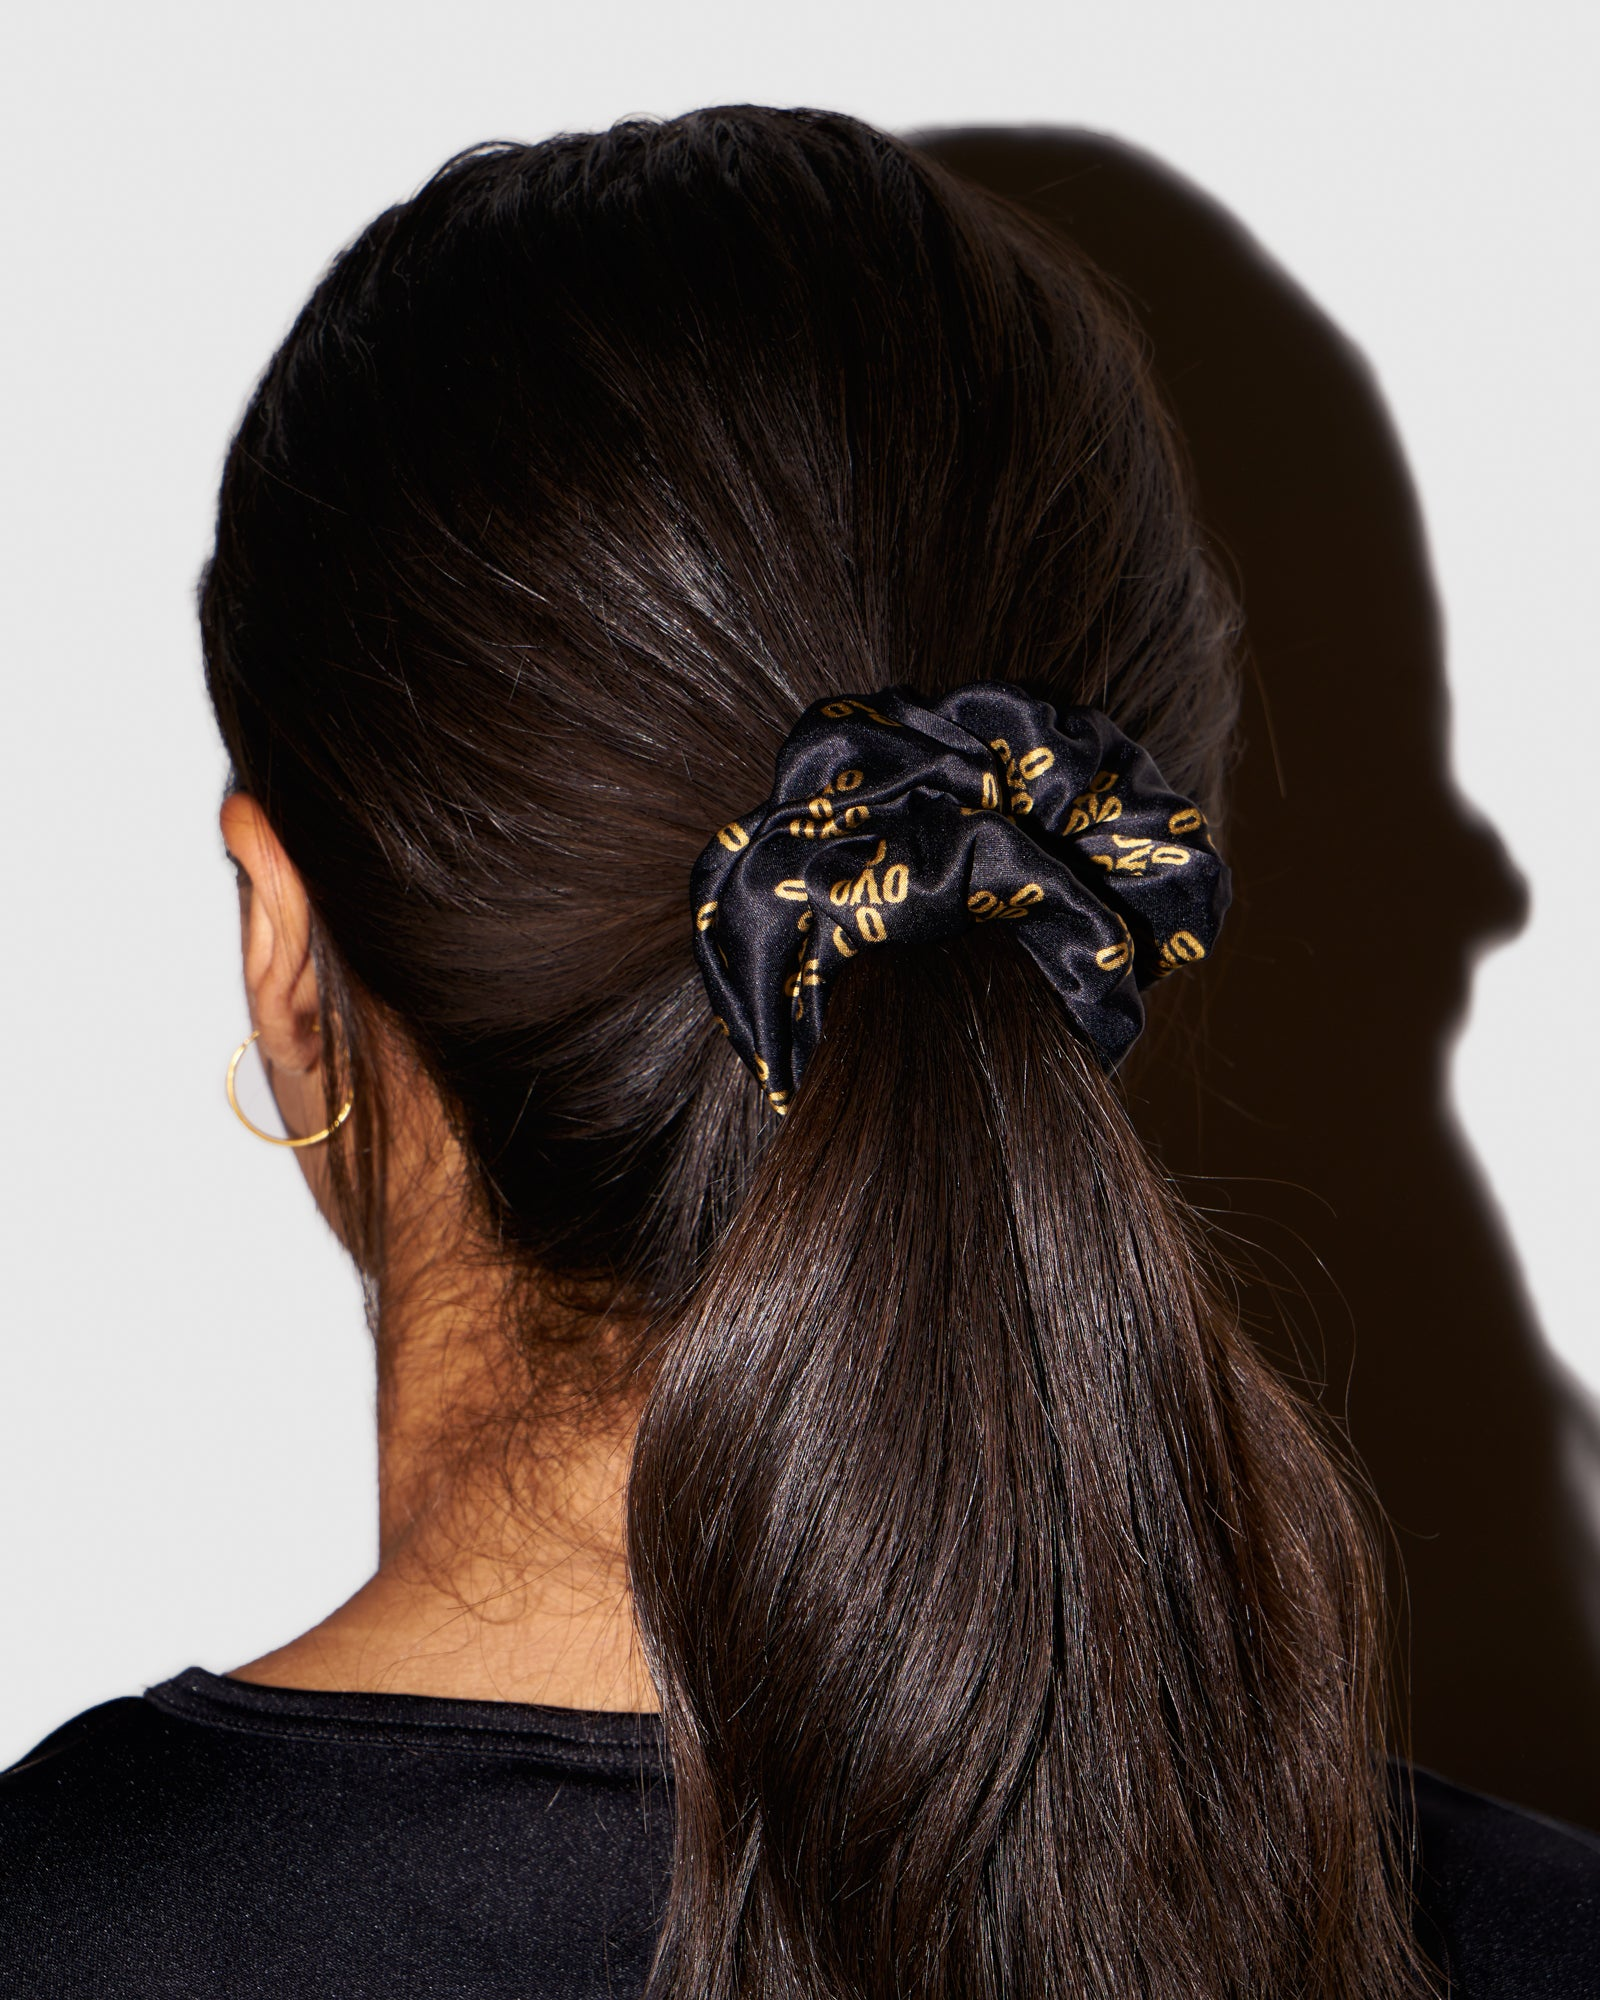 WOMEN'S OVO MONOGRAM SILK SCRUNCHIE - BLACK